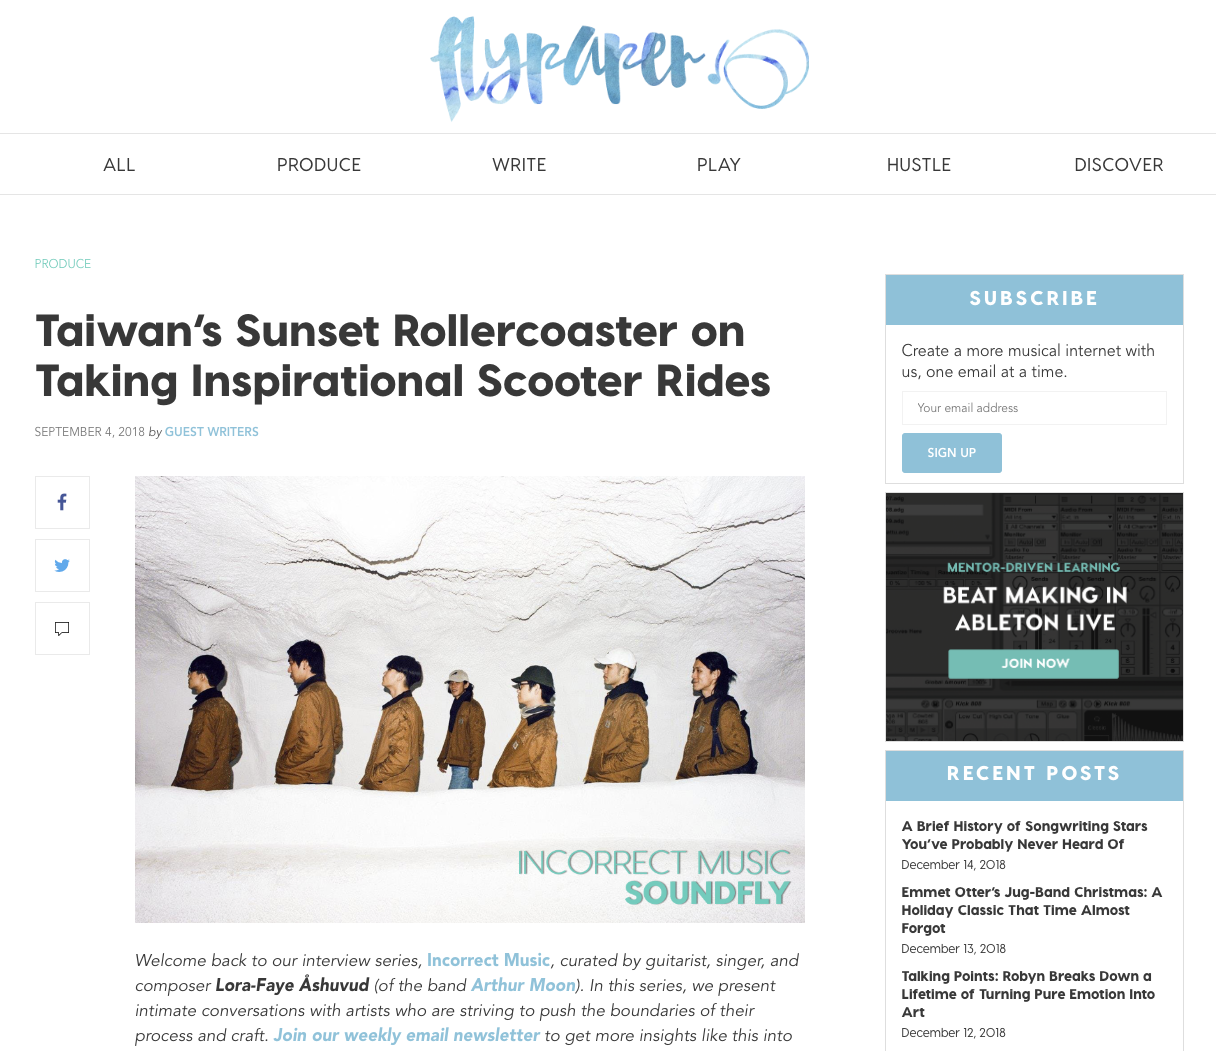 https://flypaper.soundfly.com/produce/sunset-rollercoaster-on-taking-inspirational-scooter-rides/